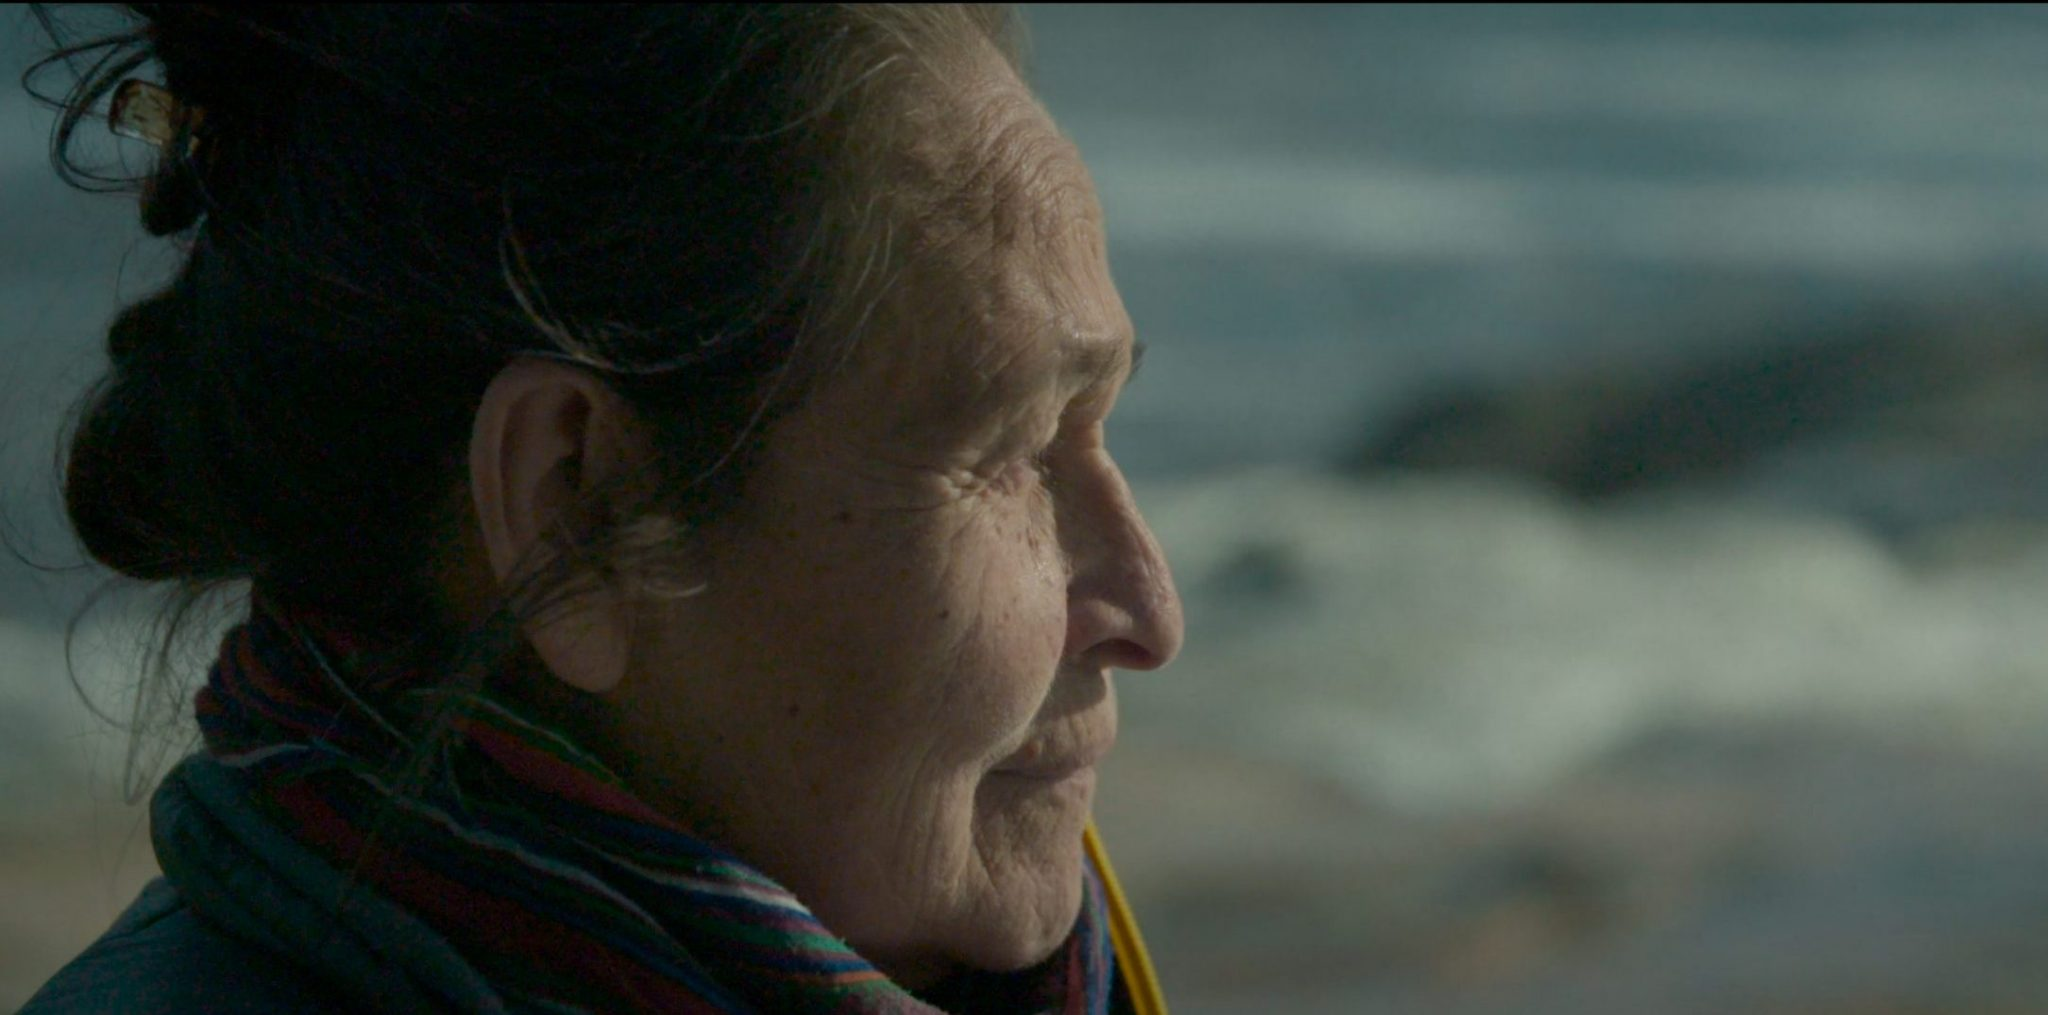 """A still from """"Call Me Human"""". A close up shot of Joséphine, the film's Innu protagonist. She is looking to the right of the frame with a pensive expression, and the corners of her mouth are upturned. She is bundled up in a jacket and a scarf to face the elements of the sea and shore behind her."""